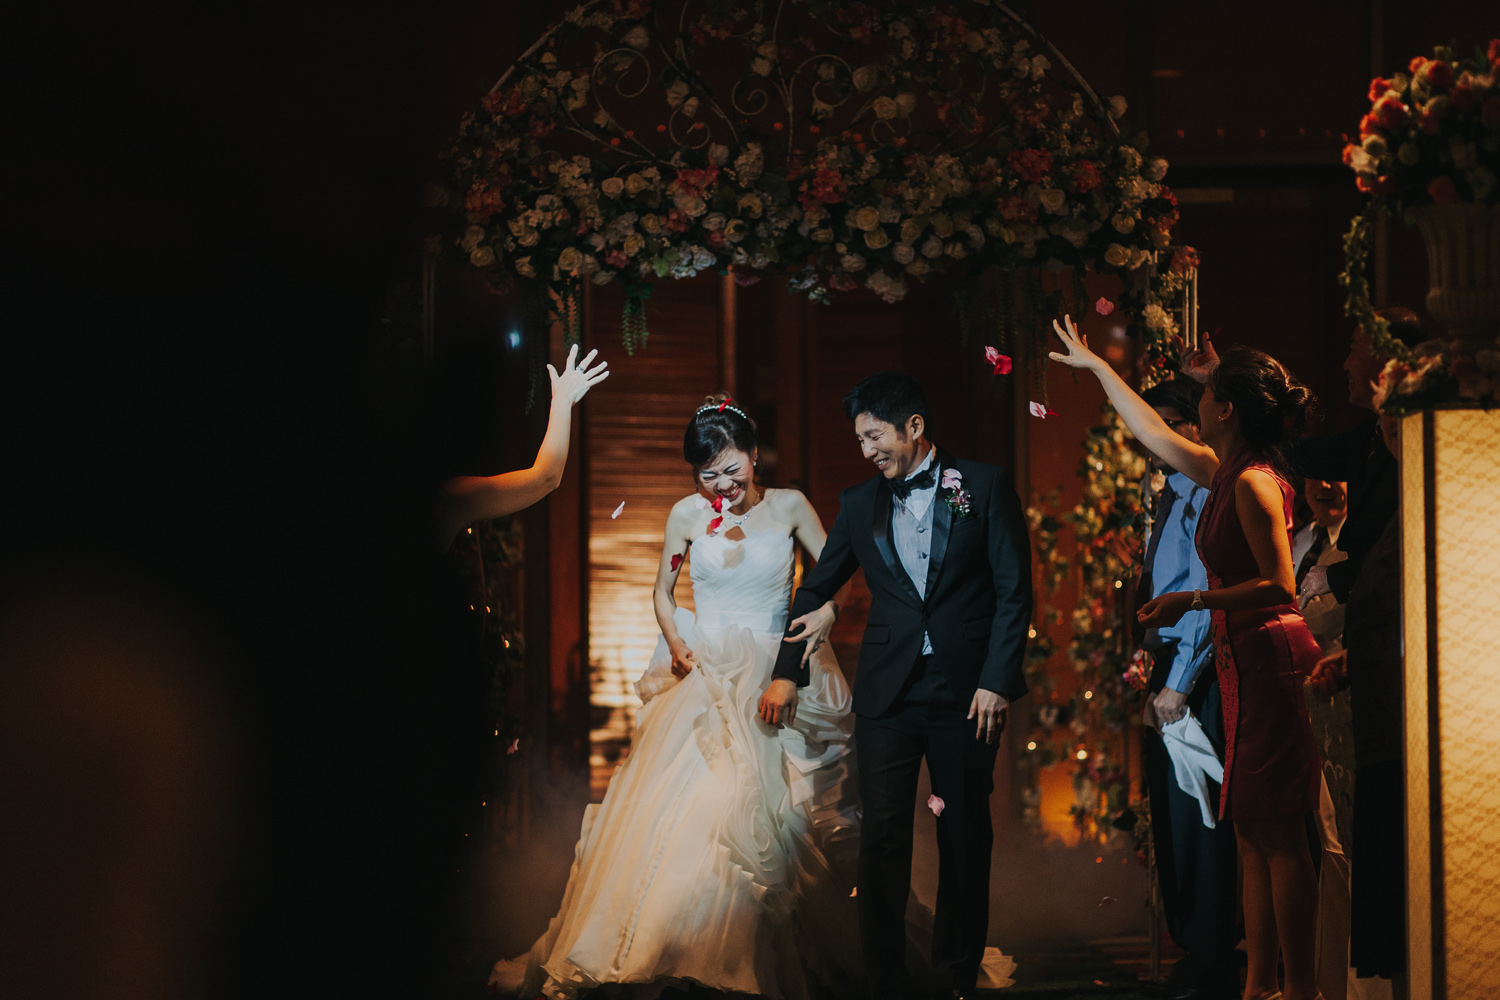 bittersweet photography Singapore wedding photographer jonathan 90